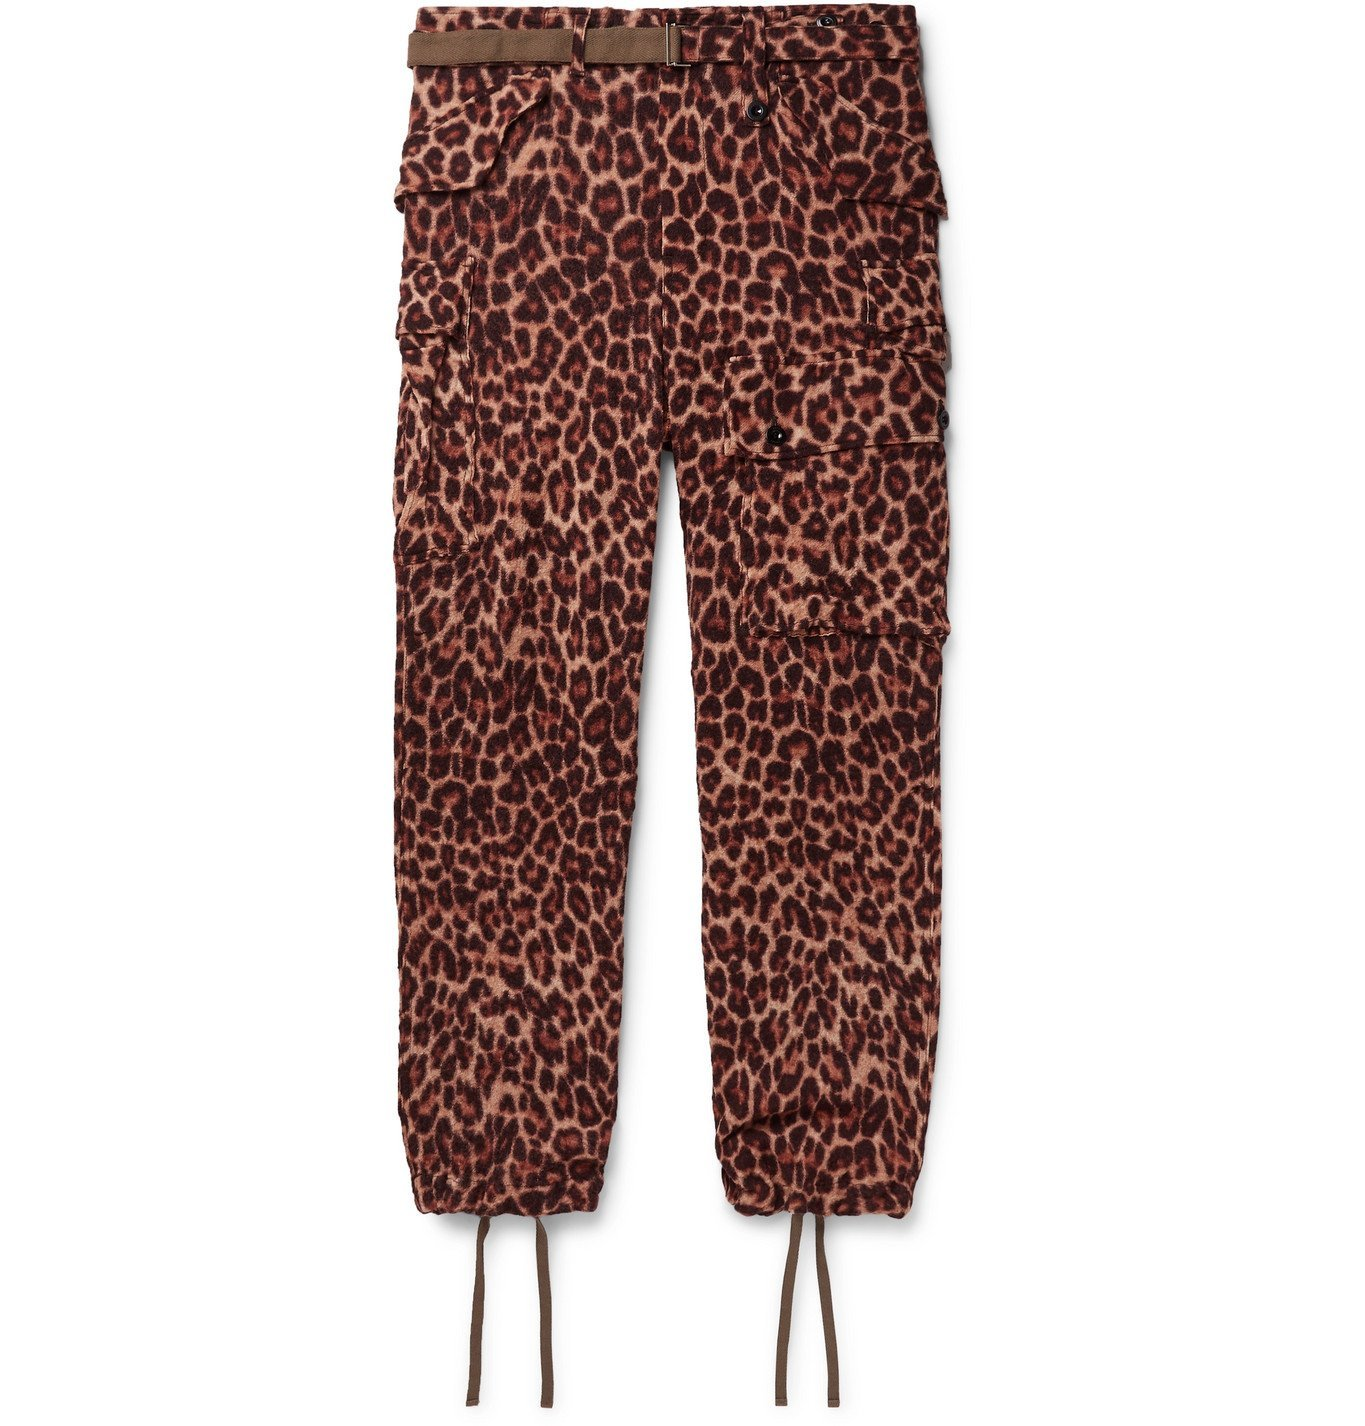 Sacai - Belted Leopard-Print Wool Trousers - Brown